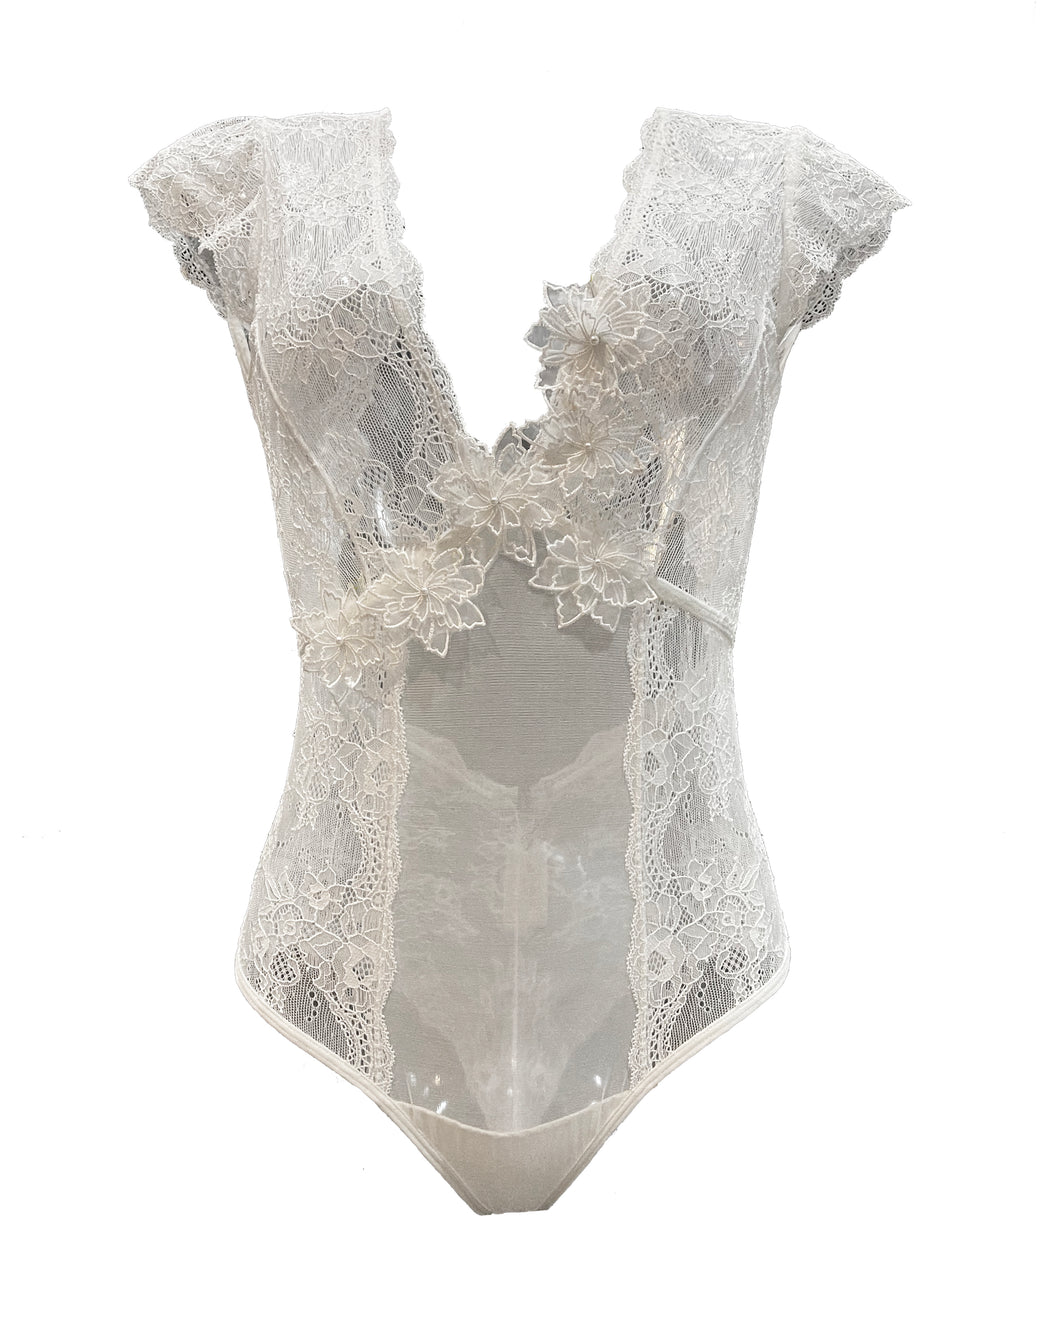 Magnolia Lace and Tulle Bodysuit